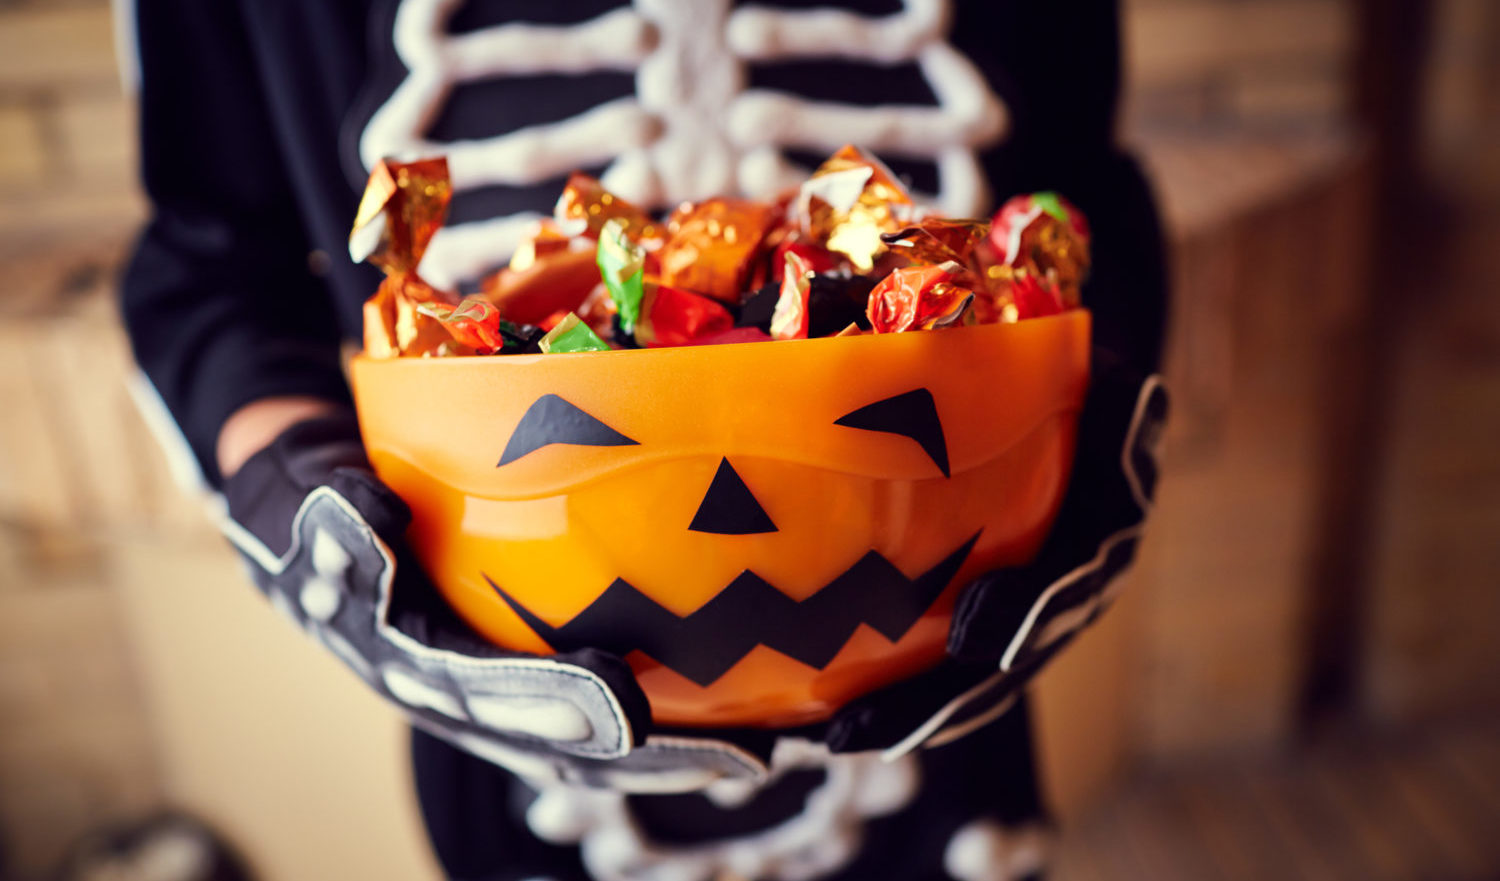 Boy in skeleton costume holding bowl full of candies